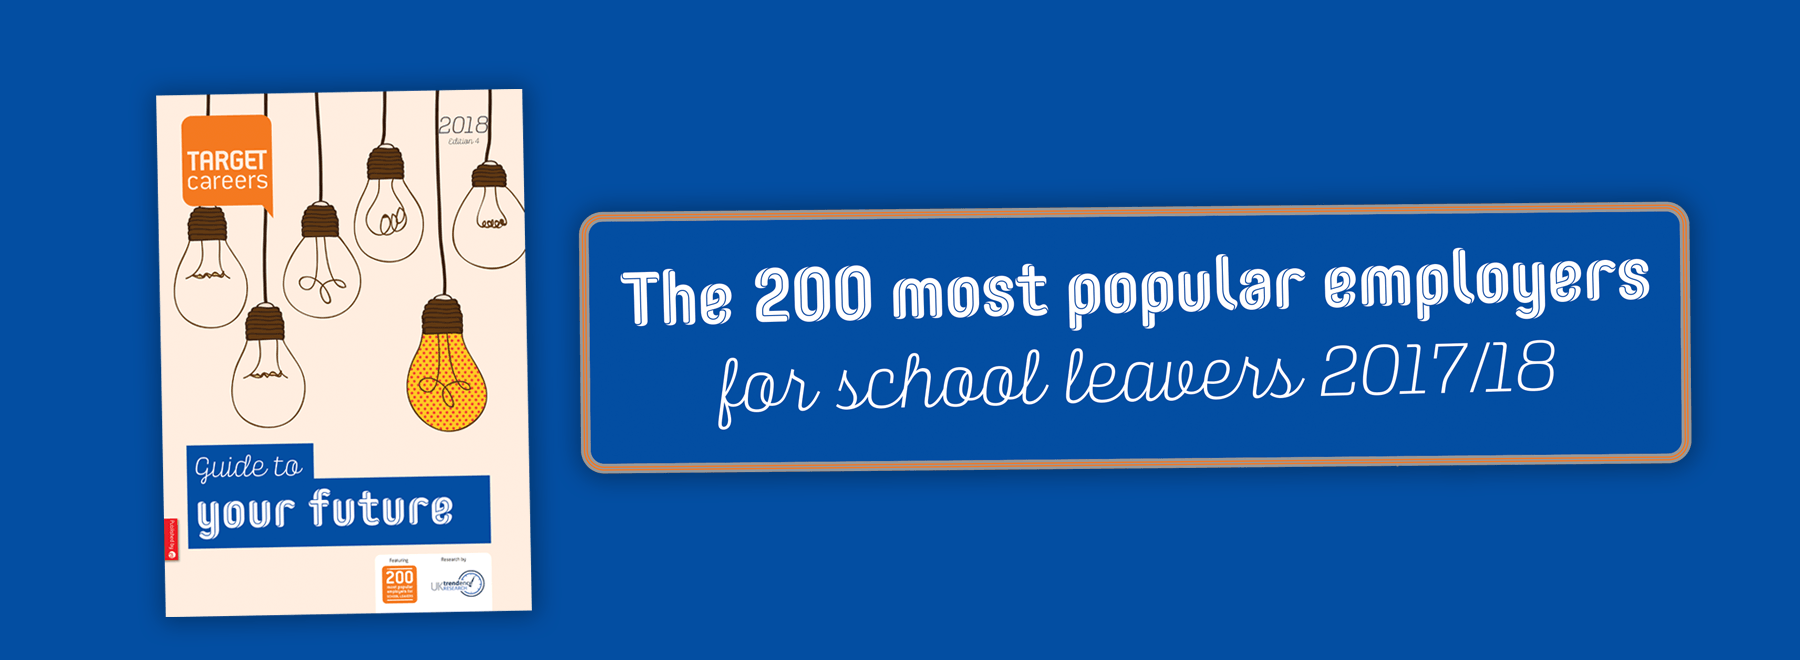 The UK's 200 most popular employers for school leavers